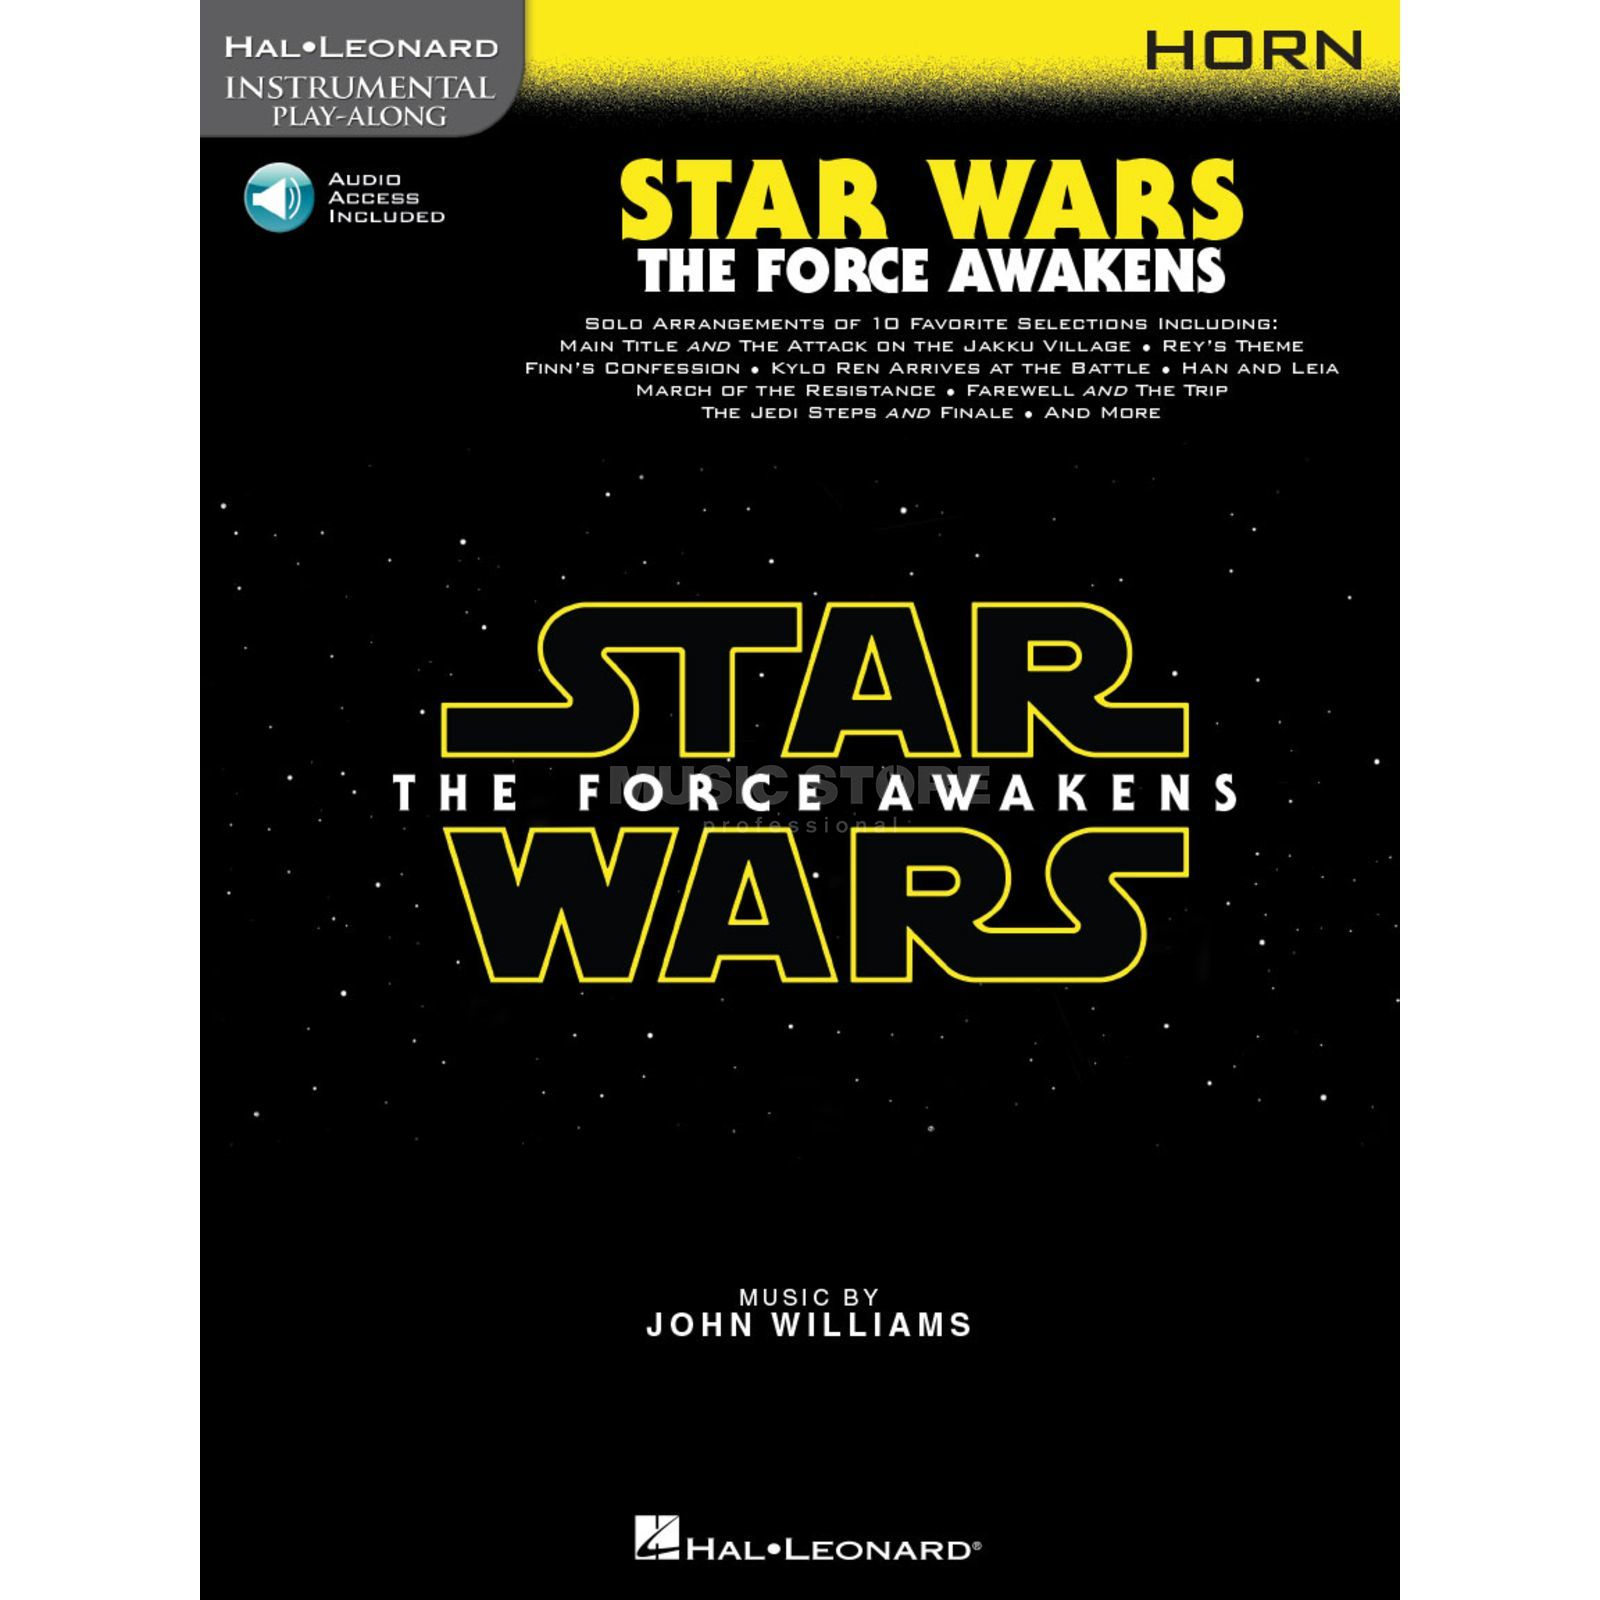 Hal Leonard Instrumental Play-Along: Star Wars - The Force Awakens - Horn Product Image